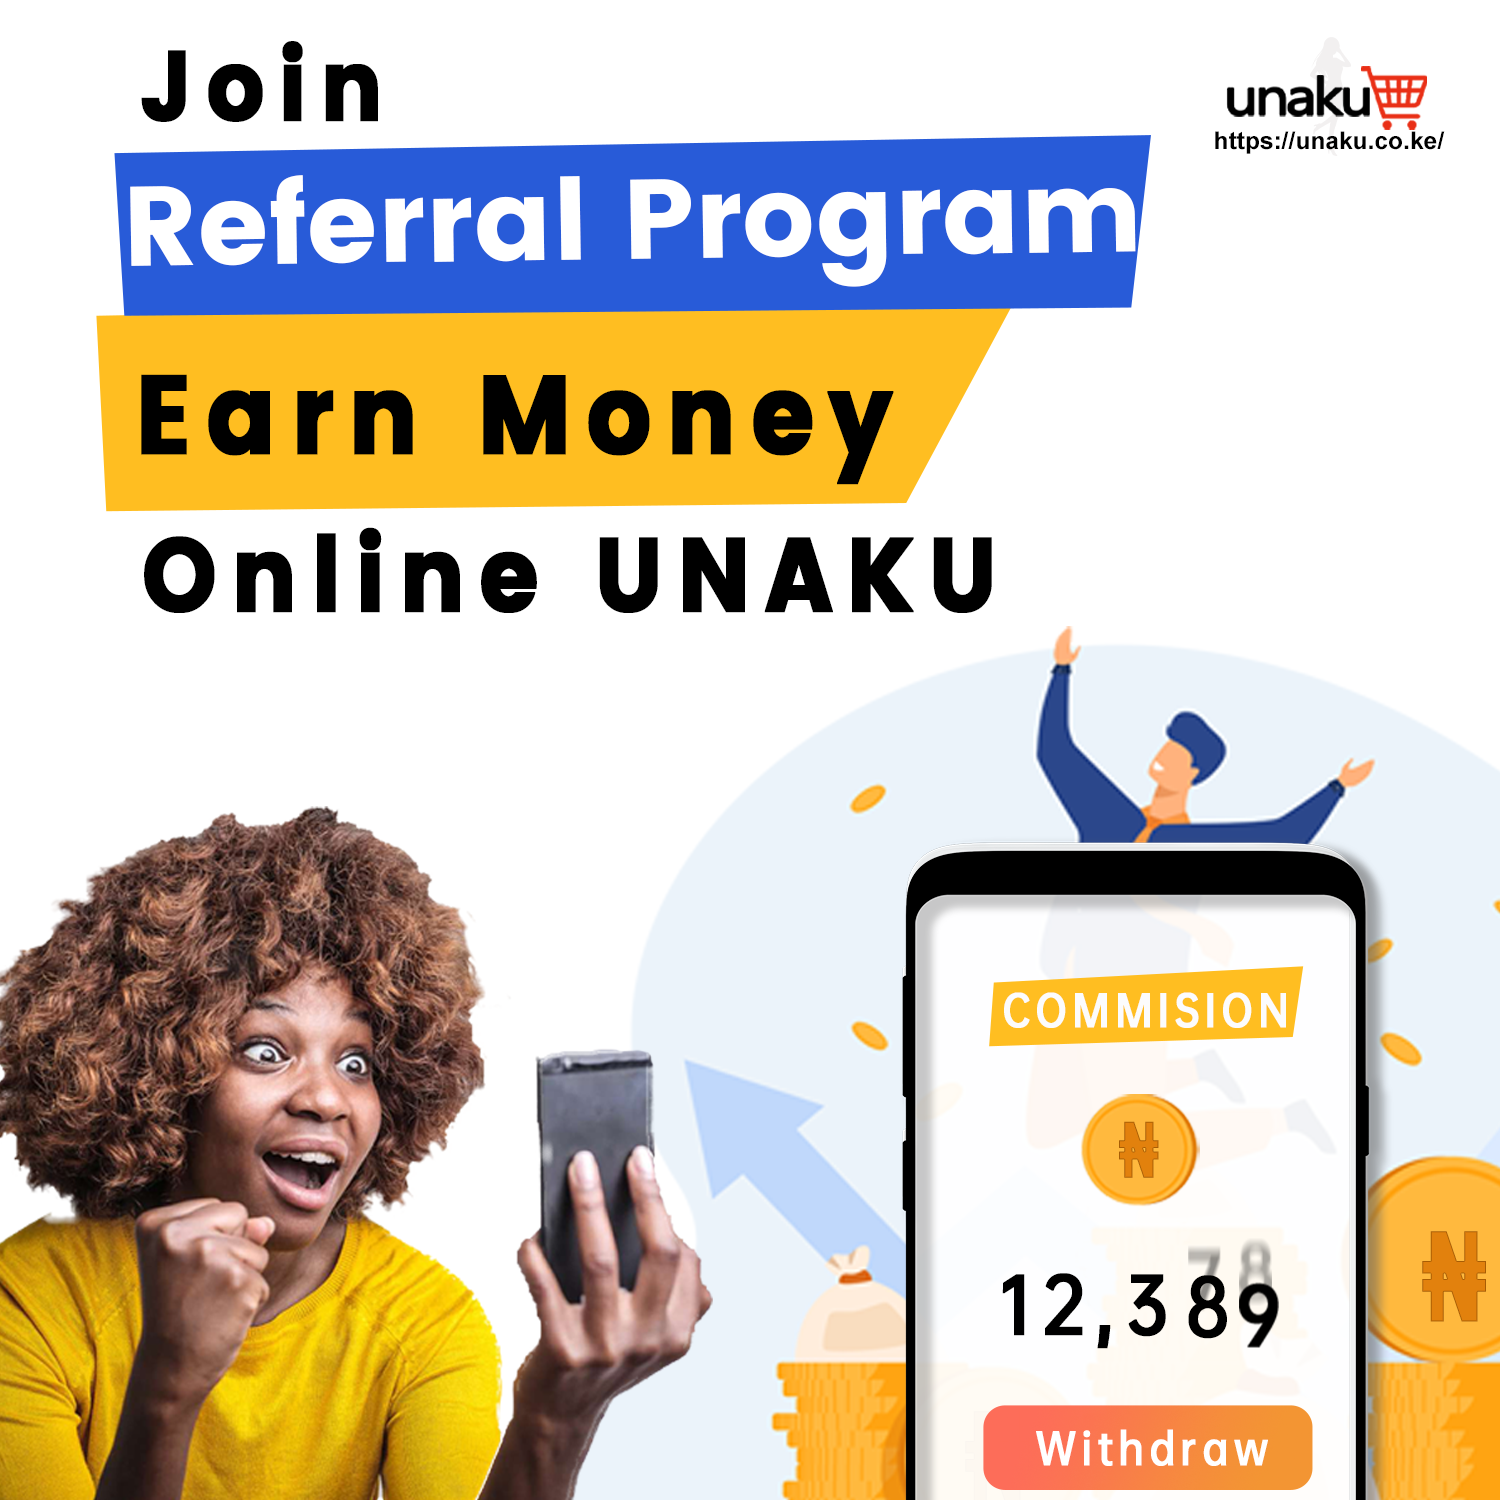 There are 2 ways to earn commission as UNAKU City marketer and Vendor marketer seperately.